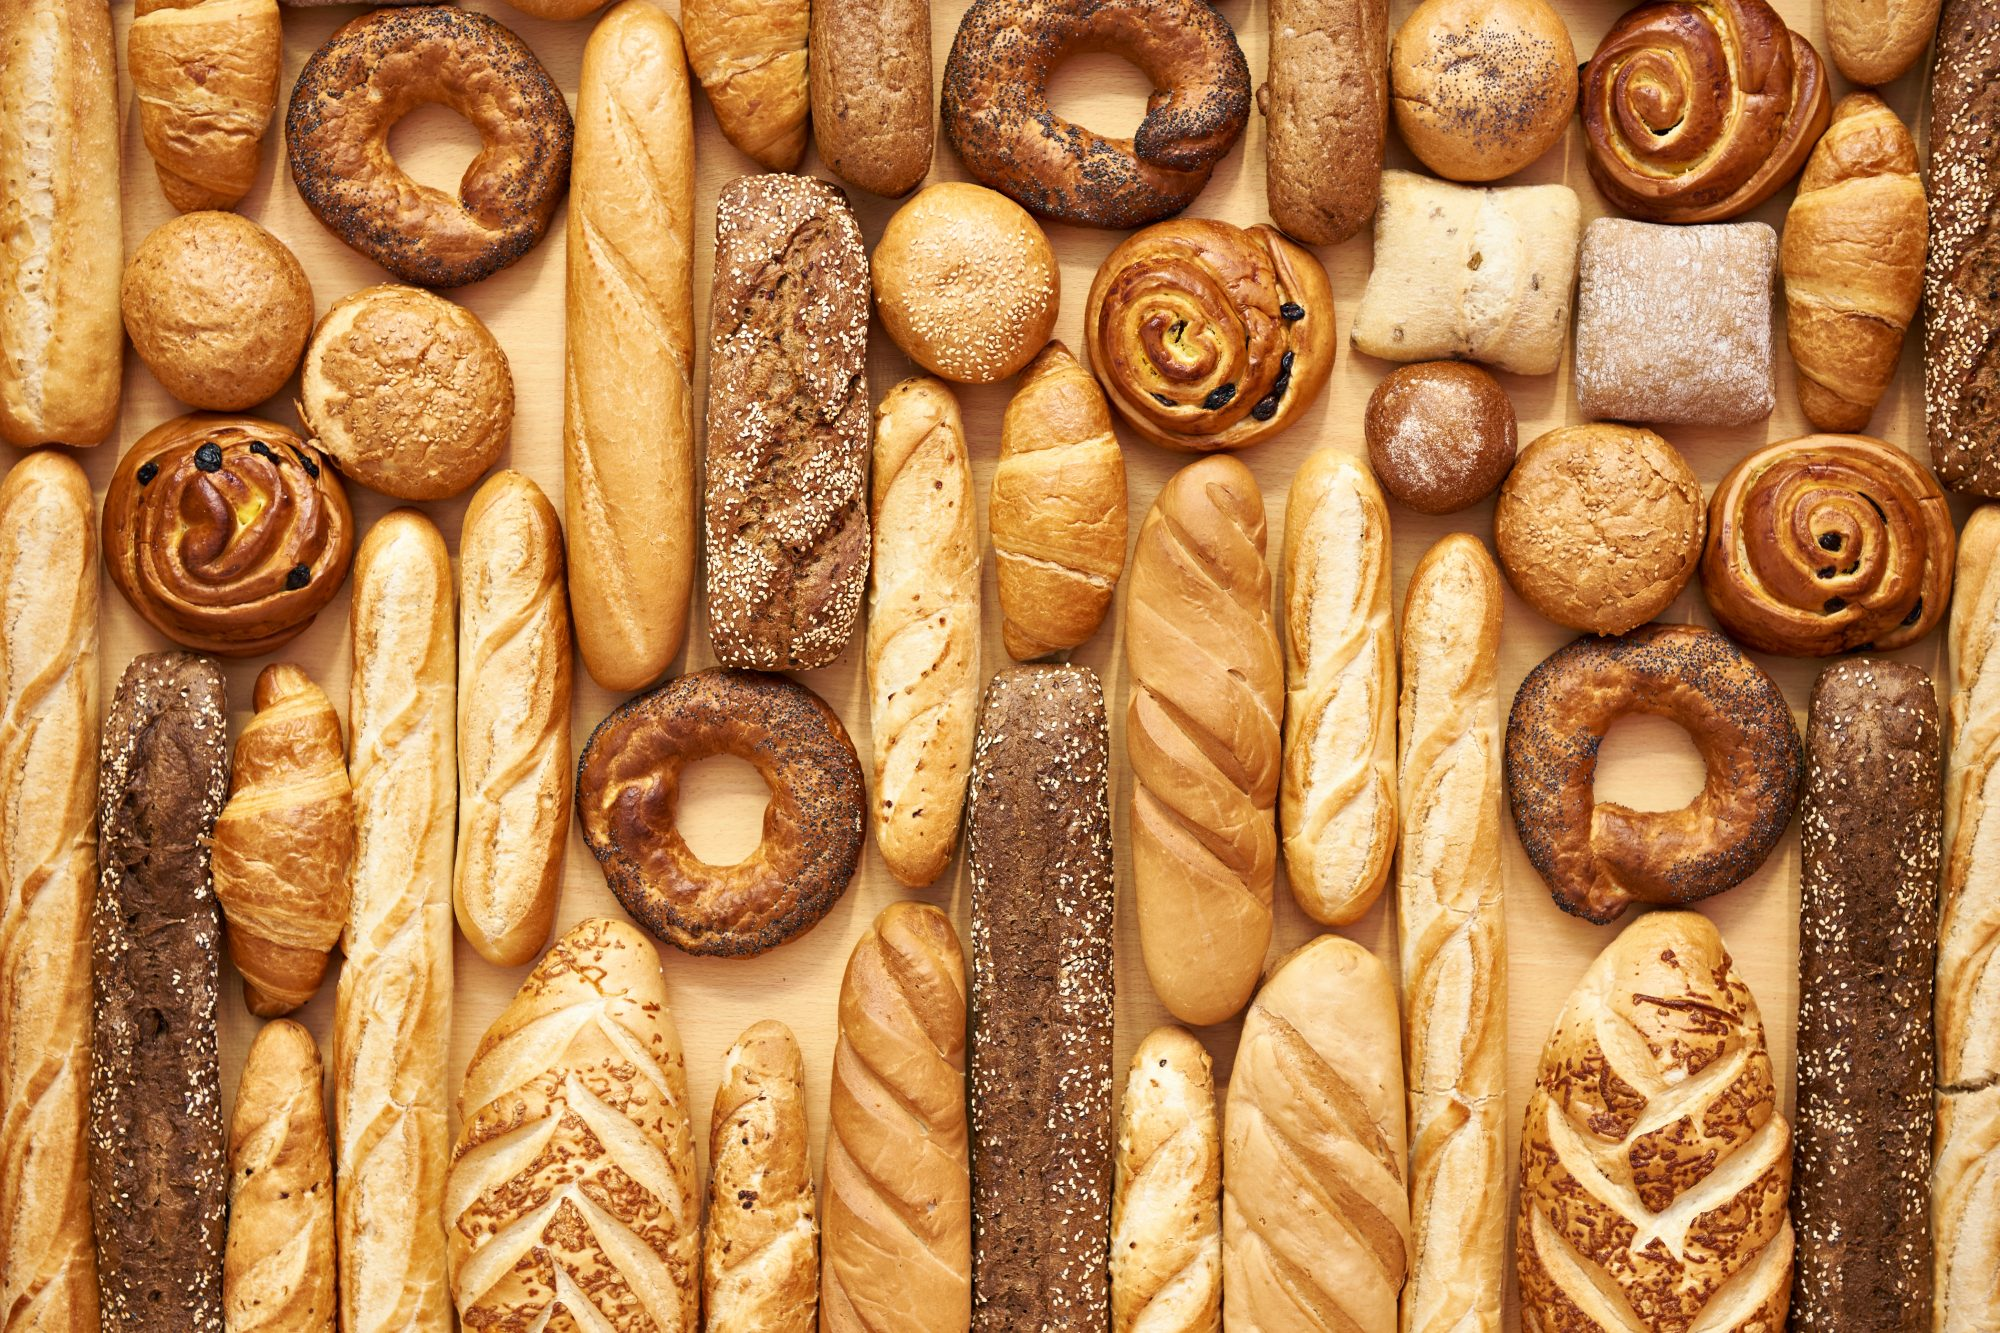 5 Things to Know Before Buying Bread at the Store